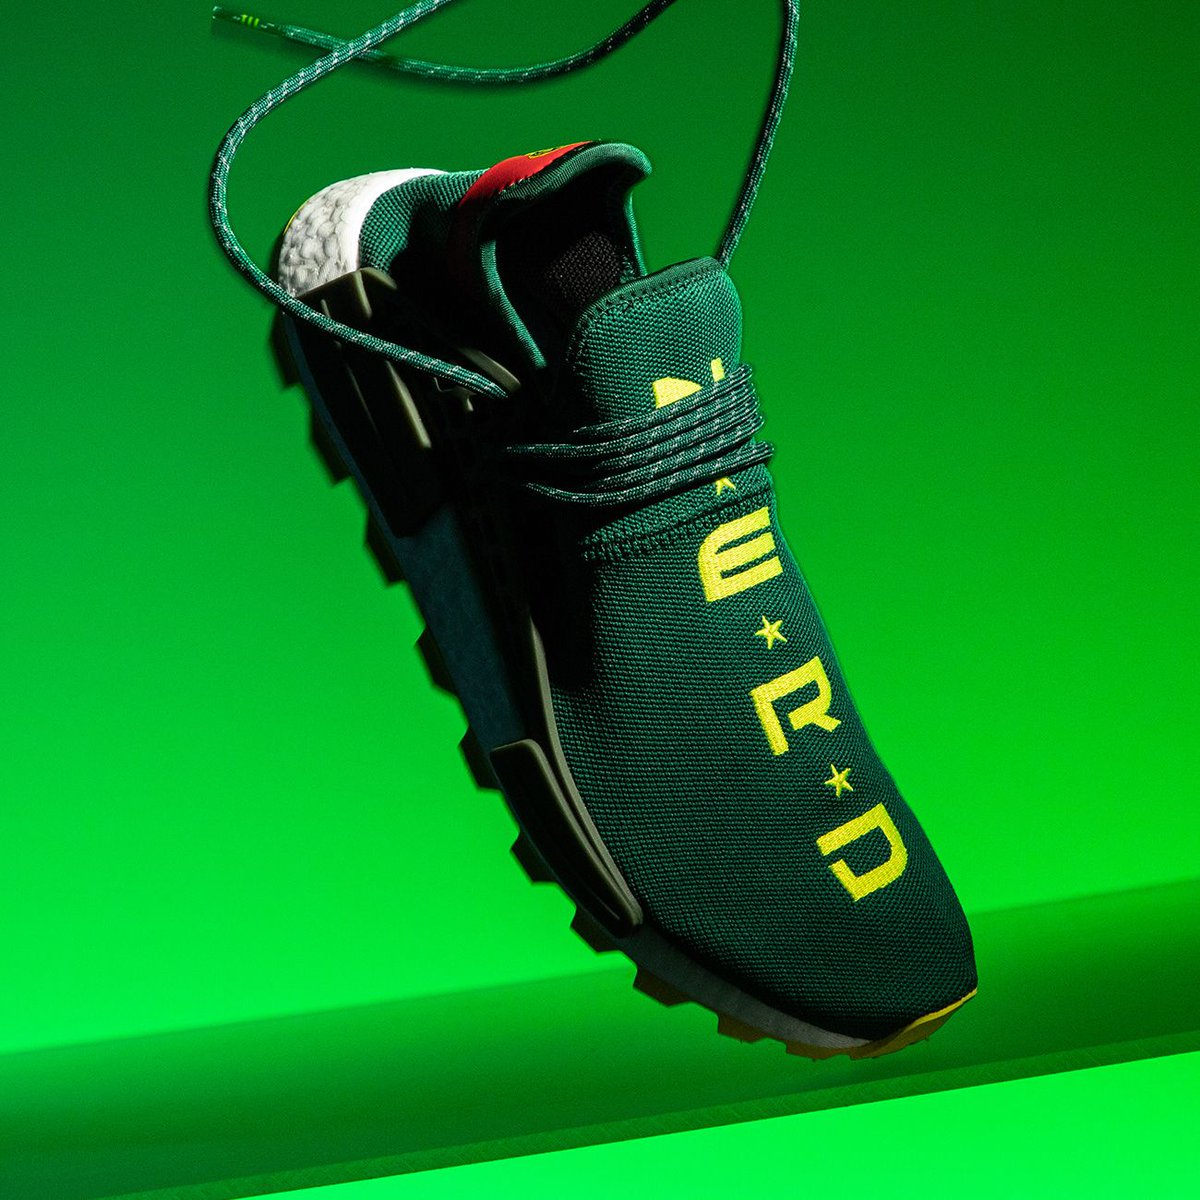 """The limited edition NERD x Pharrell x adidas NMD Hu TR """"BBC Exclusive""""  doubles at the perfect option to lace up for St. Patrick s Day.  http   bit.ly 2x7ix3Z ... a16dd1d93390"""